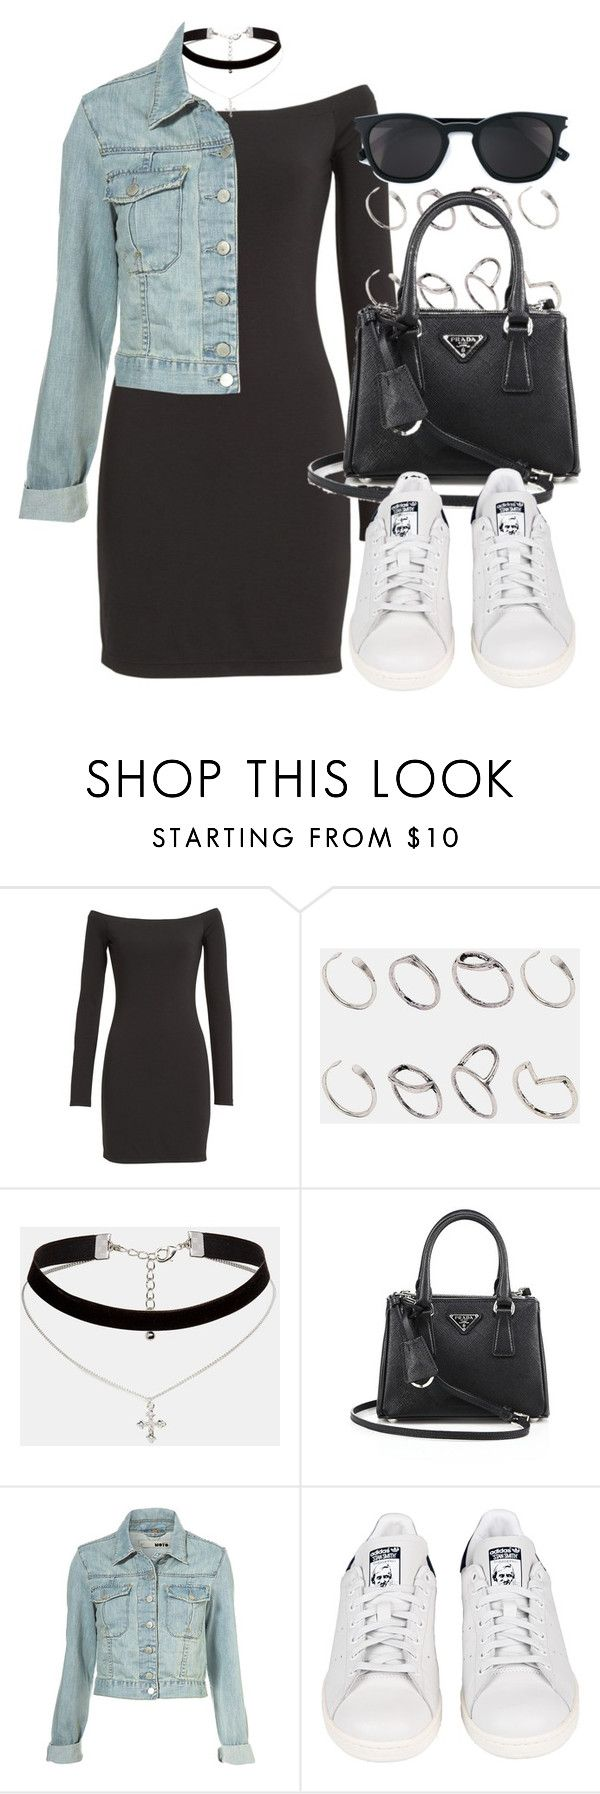 """Style #11400"" by vany-alvarado ❤ liked on Polyvore featuring T By Alexander Wang, ASOS, Prada, adidas and Yves Saint Laurent"